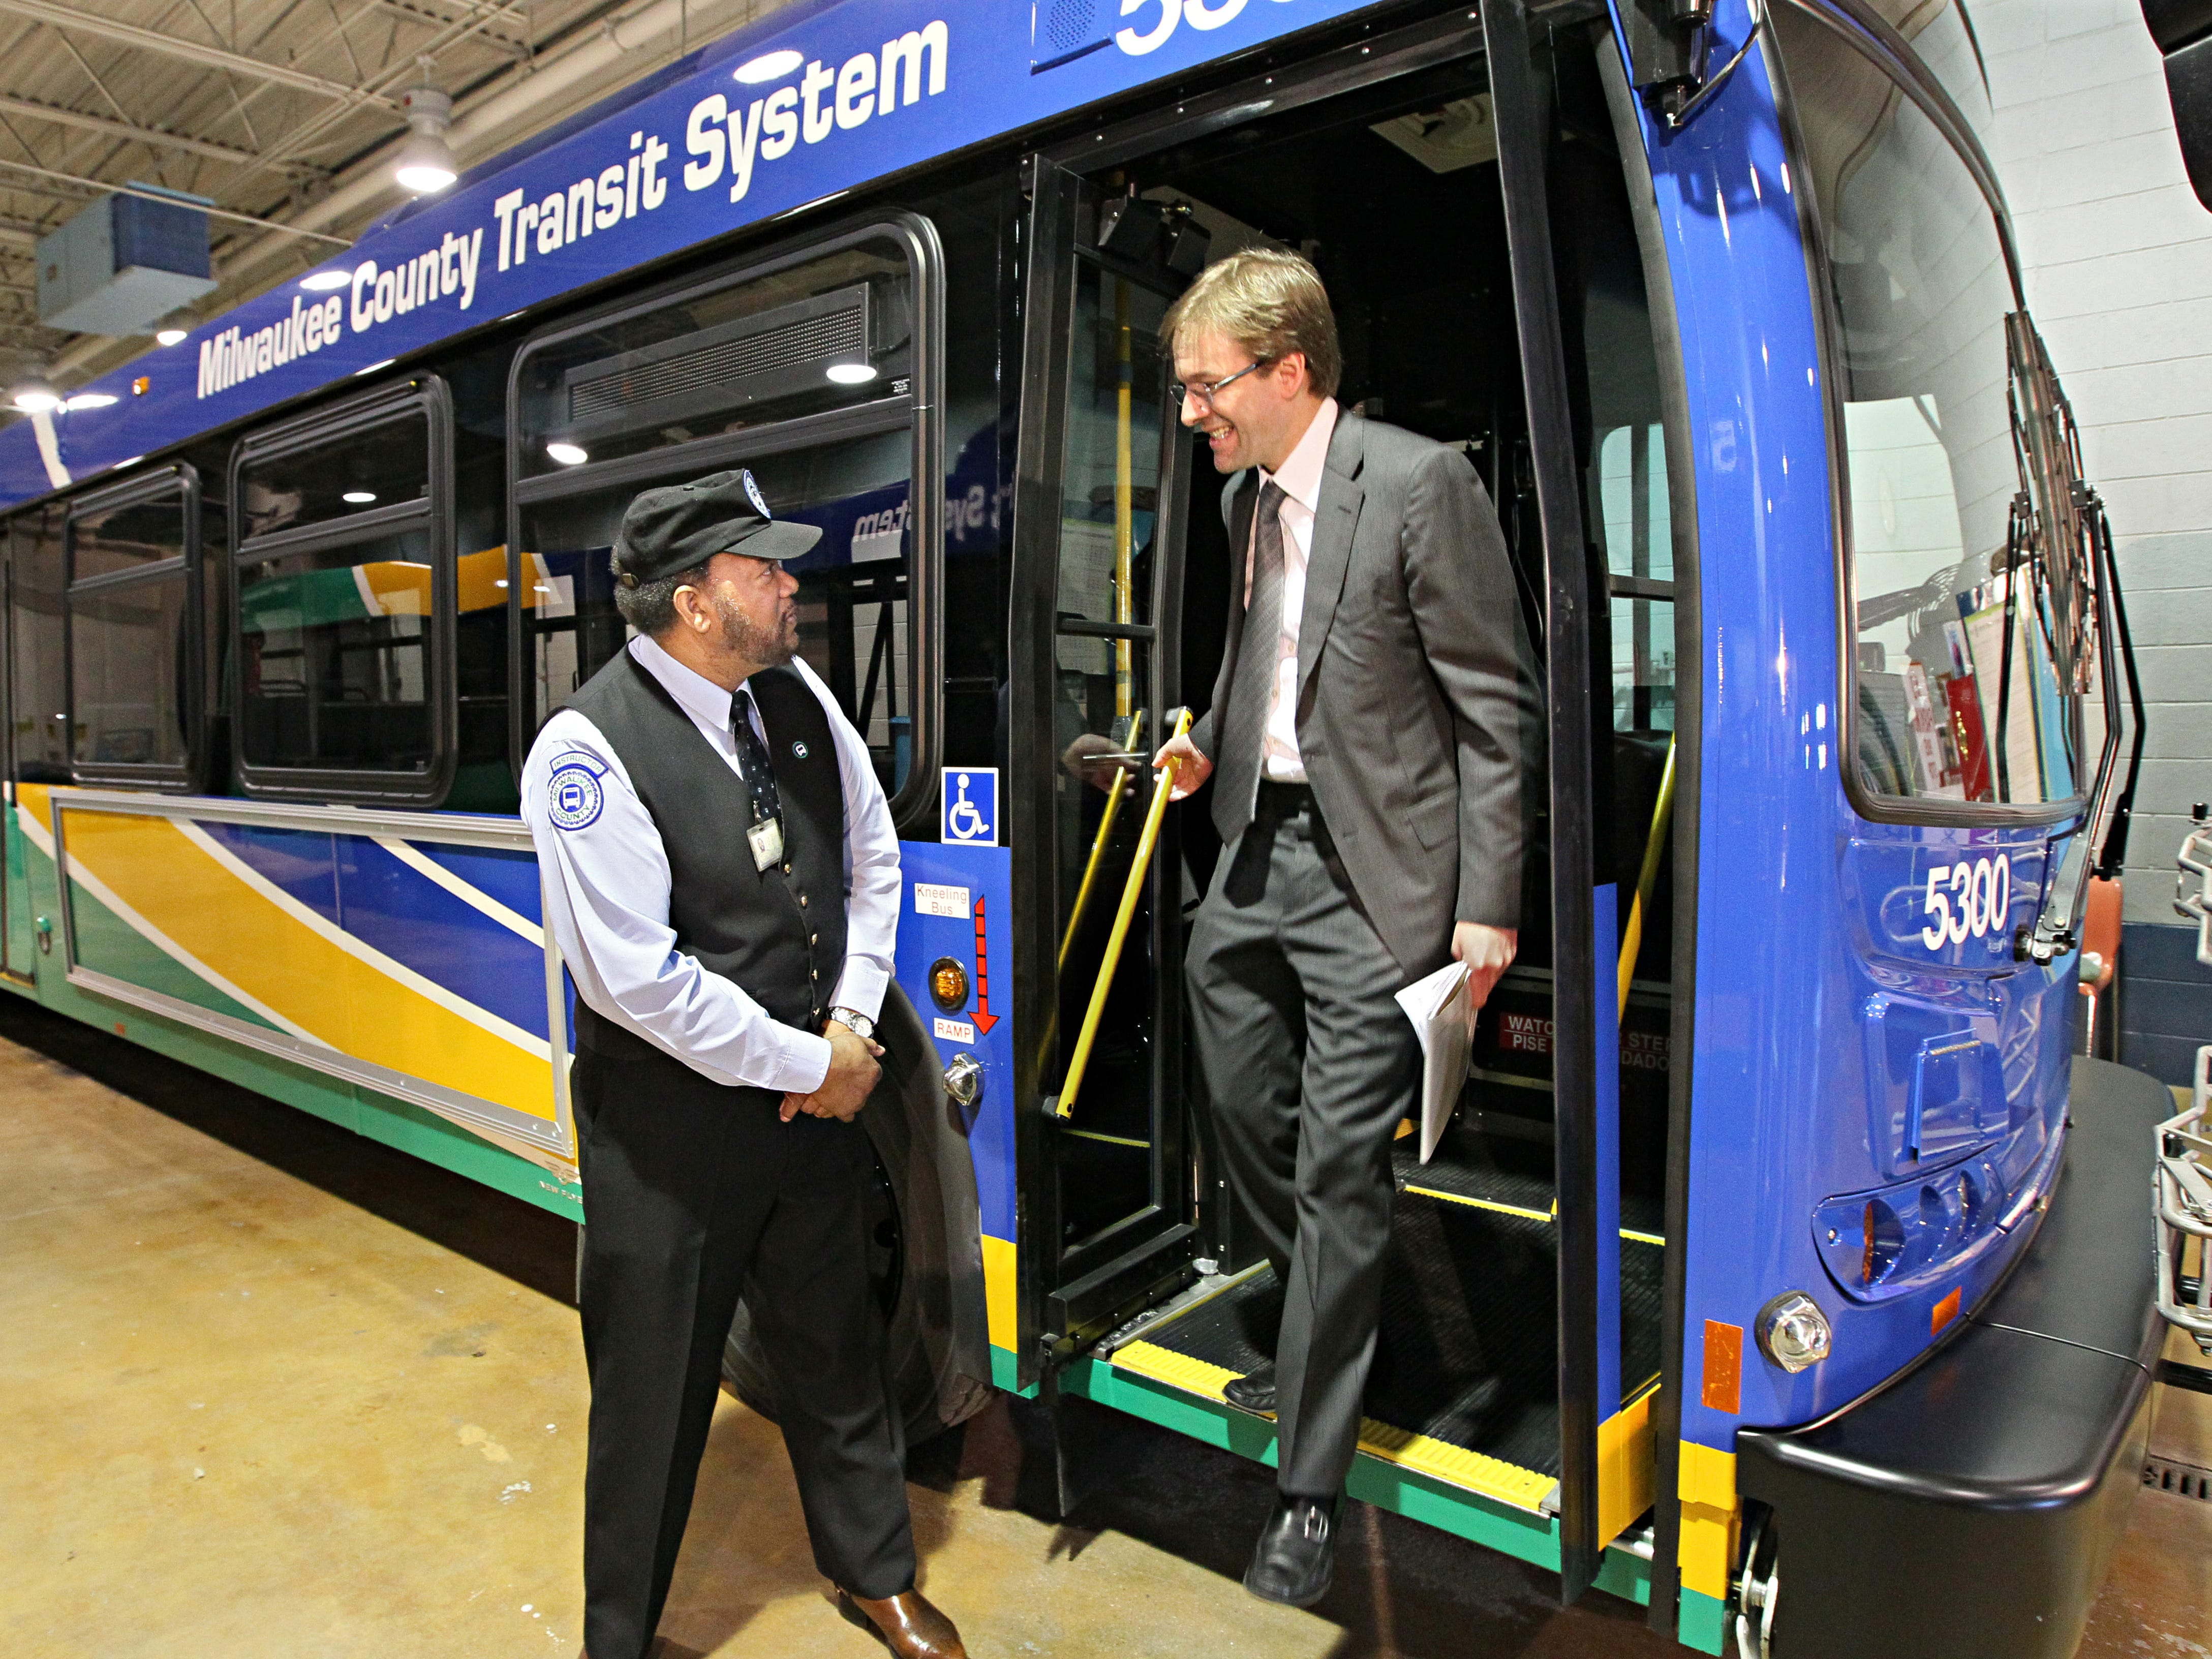 2012: The first of the 136 new clean diesel buses continue to arrive and are being put into service by the Milwaukee County Transit System. Milwaukee County Executive Chris Abele checks out the clean diesel bus and chats with MCTS bus driver Leodis Hentz (left) before he heads out onto his route with the new bus.